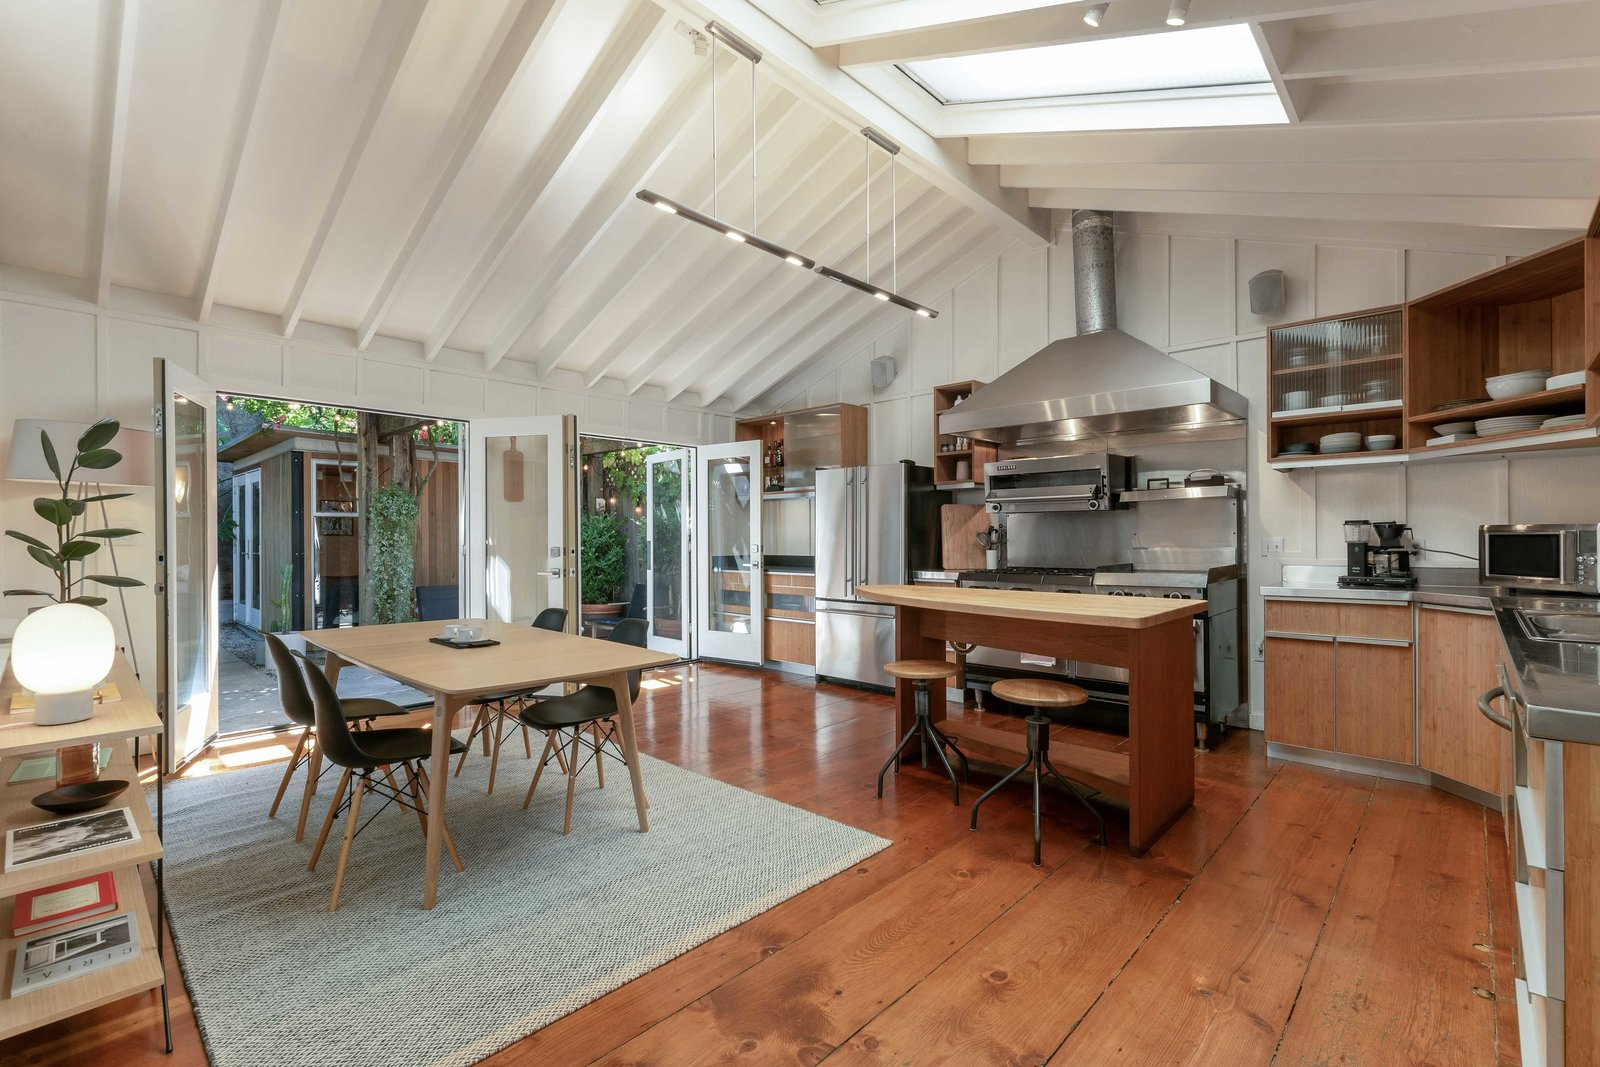 The living area flows into an open kitchen and dining area at the back of the home. A pair of French doors open to the shady backyard patio, while skylights provide additional sunlight.  Photo 4 of 13 in An Idyllic Cottage With a Garden Studio Seeks $1.8M in San Francisco